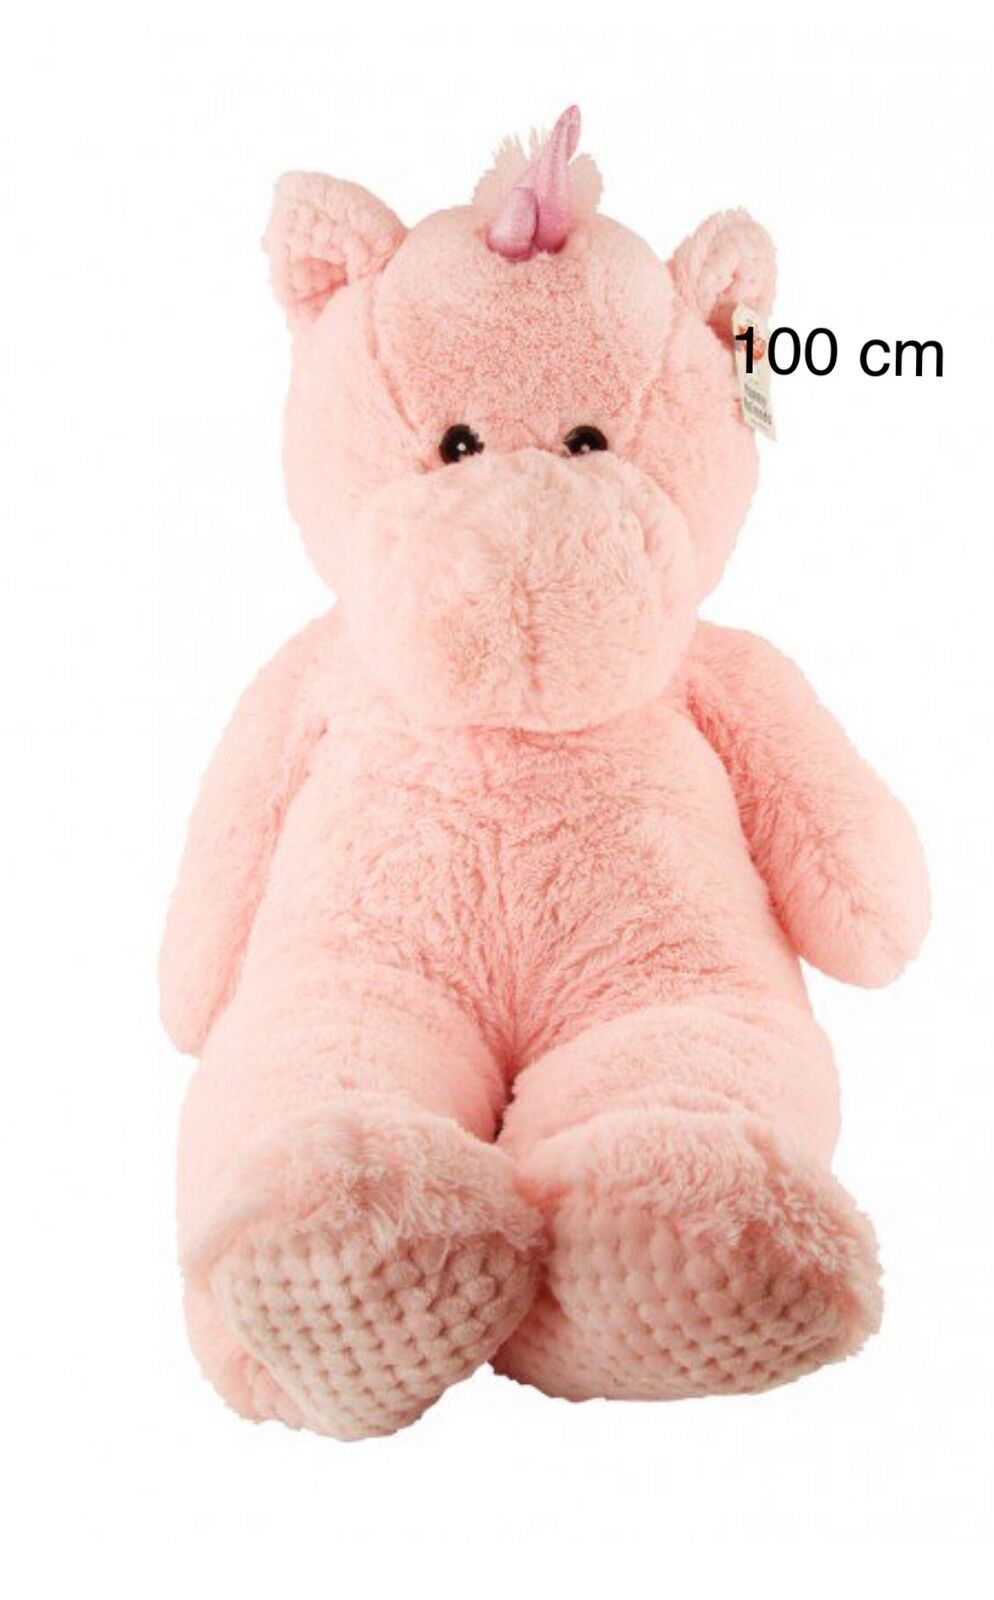 100Cm Pink Unicorn SOFT TOY TEDDY Long LARGE GIANT Christmas Kids Game Gift Play